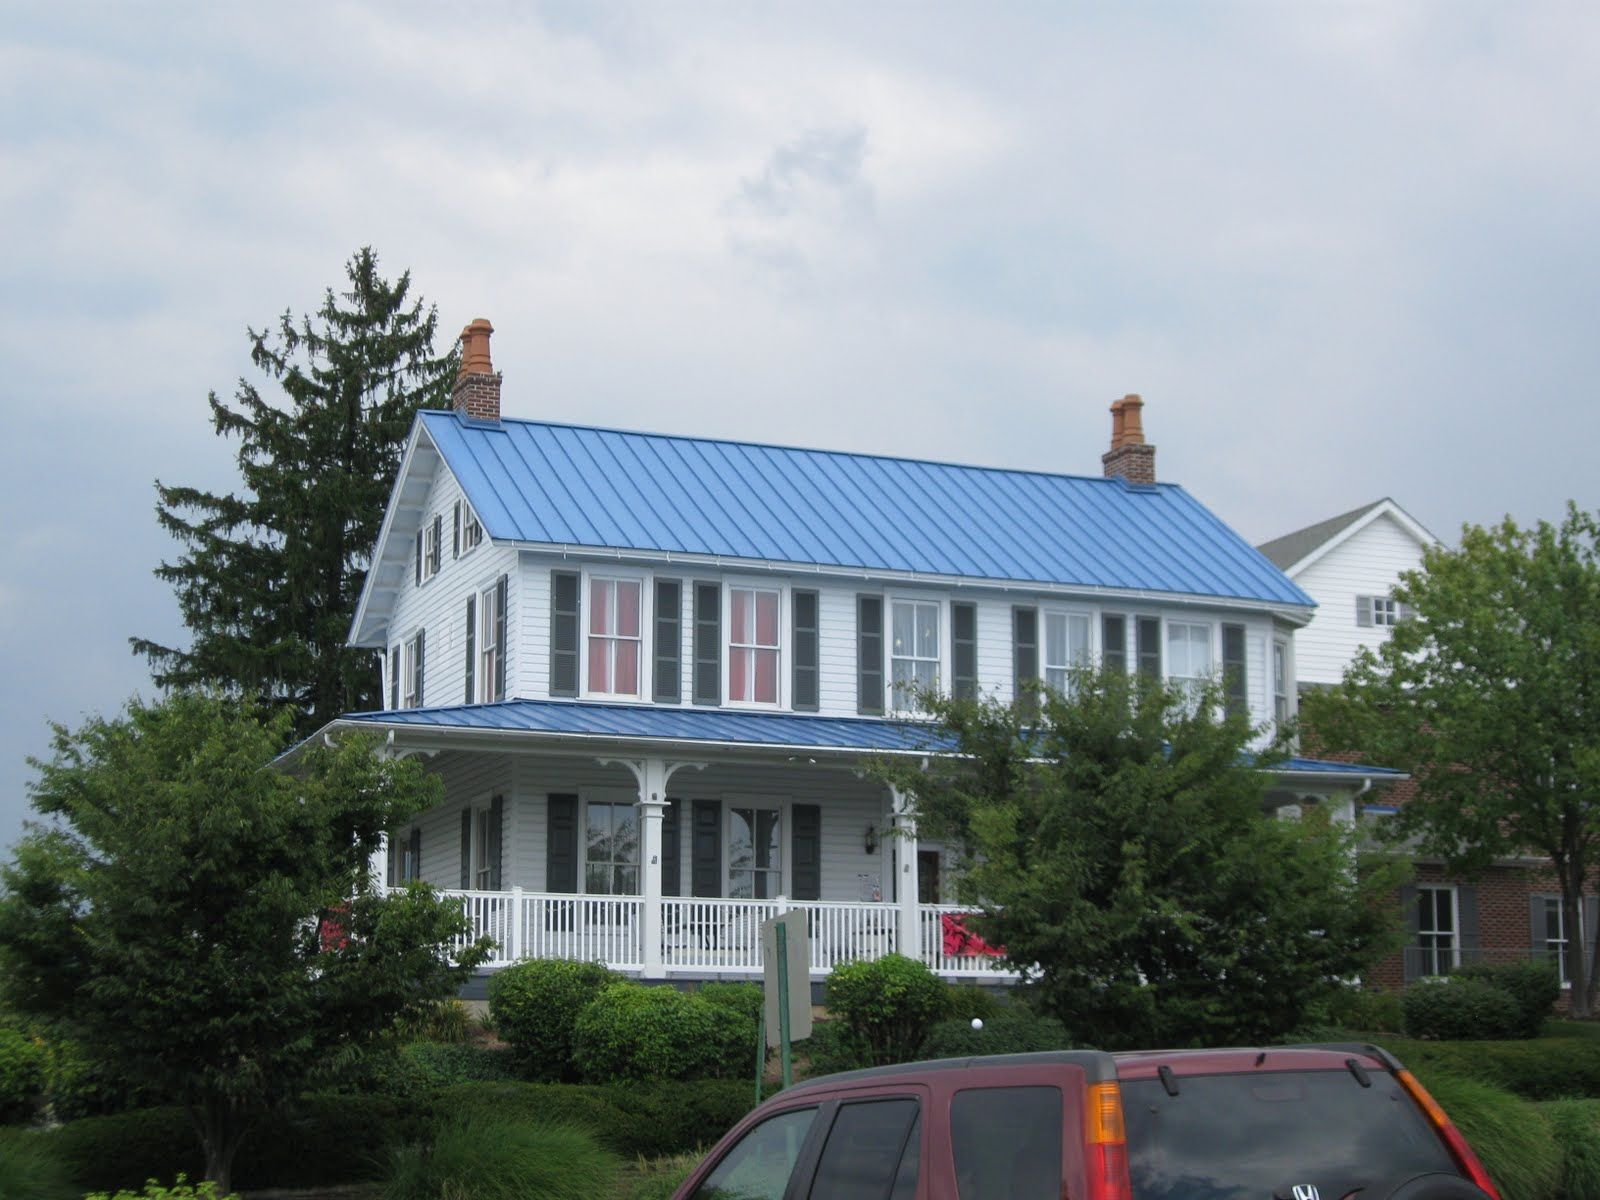 Diy Idea For Old Suitcase Stylendesigns Blue Roof House Exterior Blue Metal Roof Houses